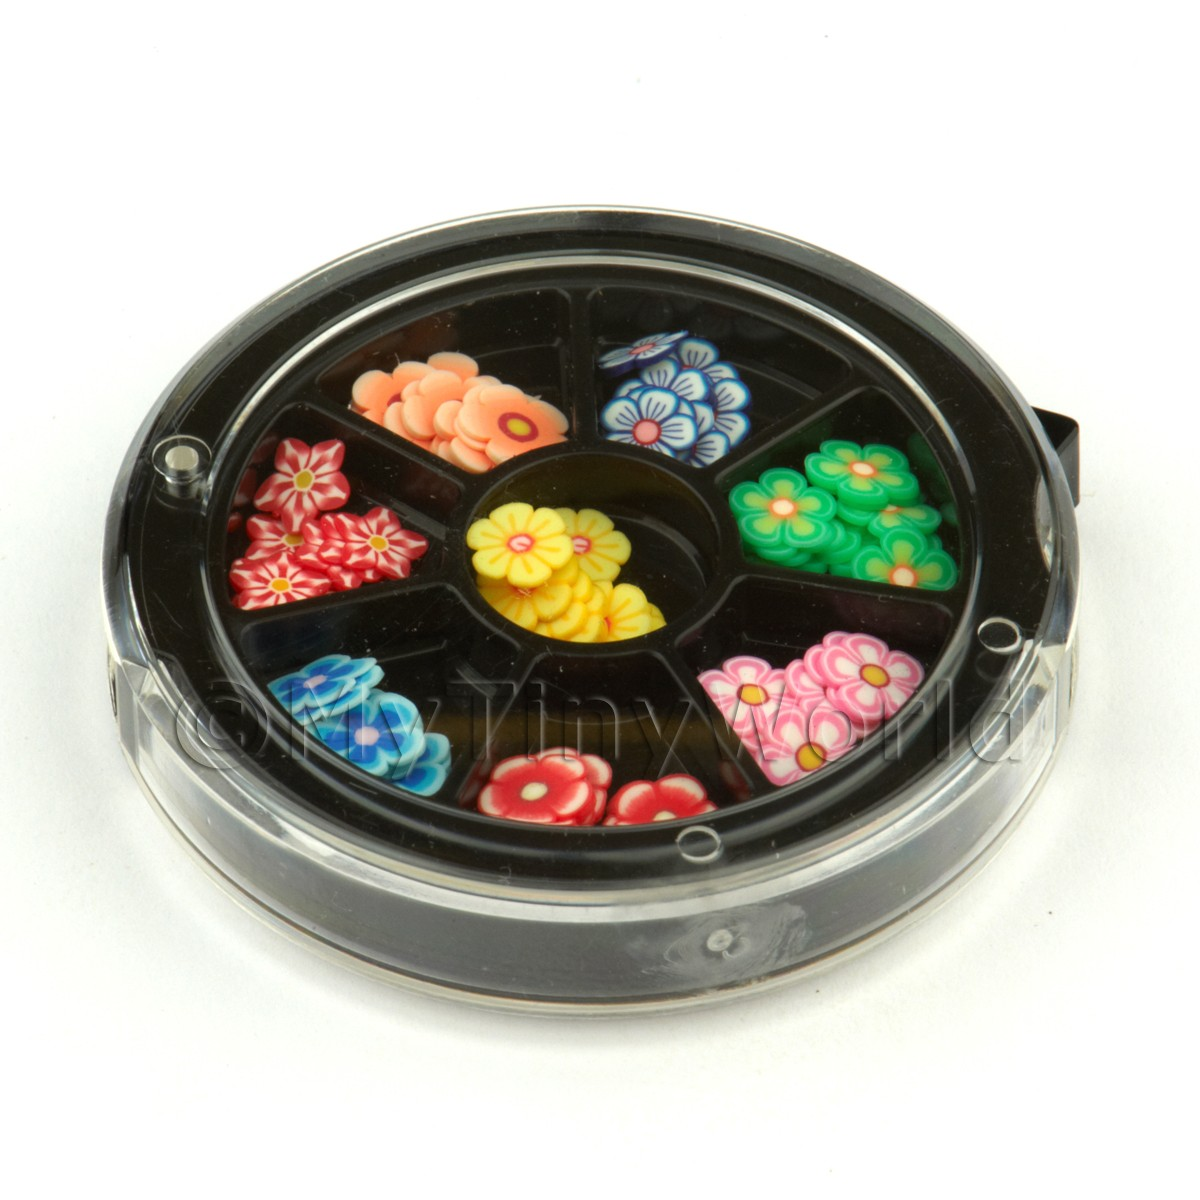 80 Assorted Nail Art Flowers Slices In a Wheel Set 2